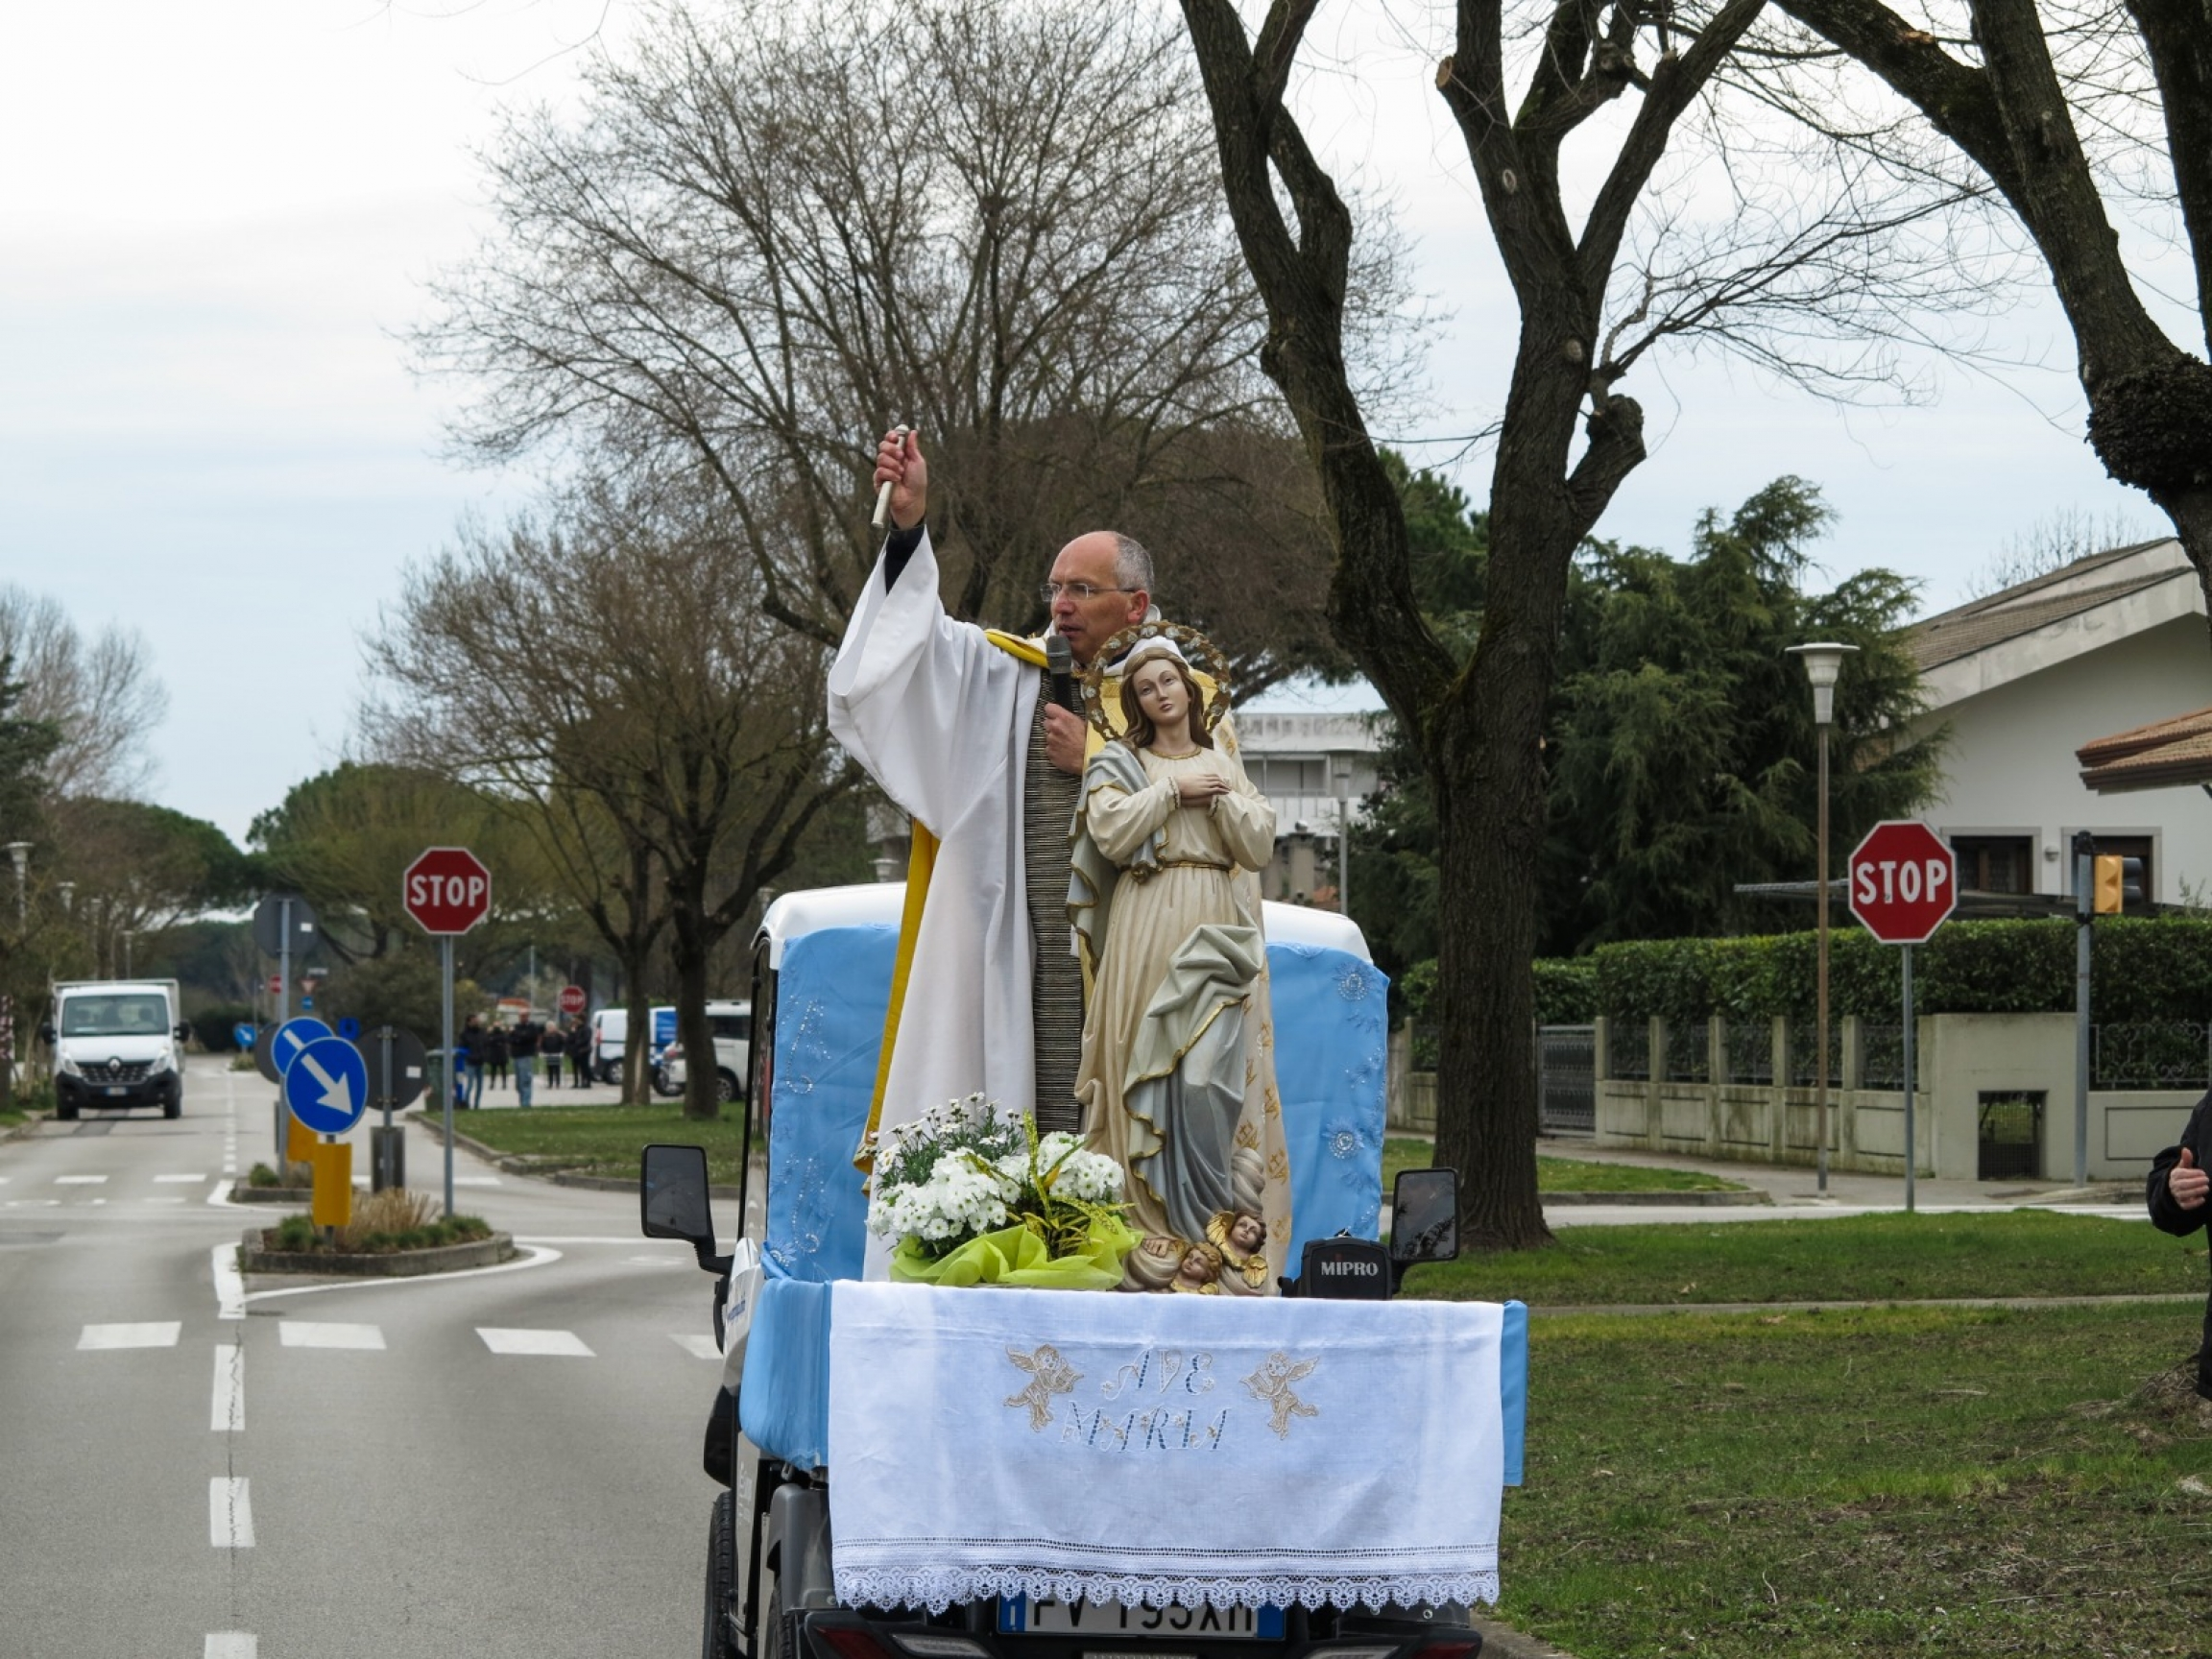 Rev. Andrea Vena, the priest of Bibiano, a small town on the coast near Venice, loaded a statue of the madonna on a three-wheeled car and set off along the streets of his town one March morning.